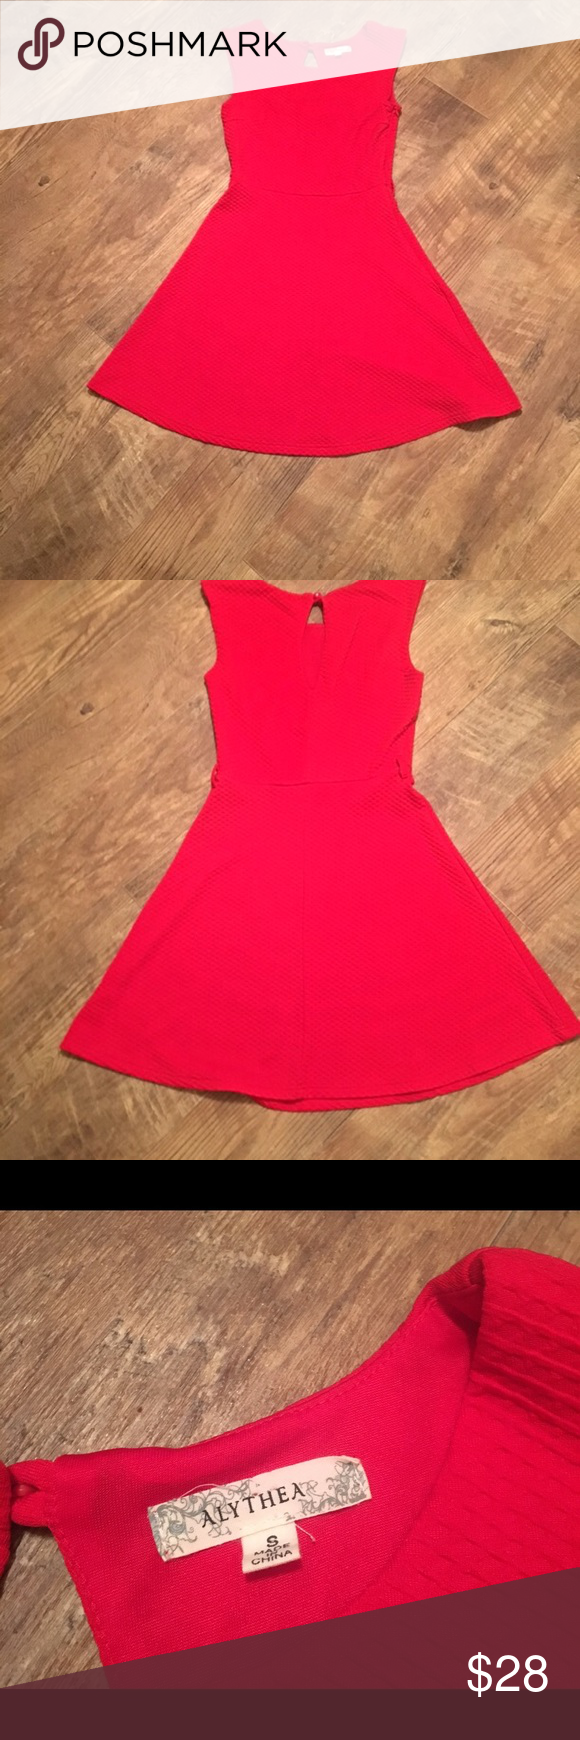 Bloomingdales Alythea Red Dress Clothes Design Fashion Design Red Dress [ 1740 x 580 Pixel ]